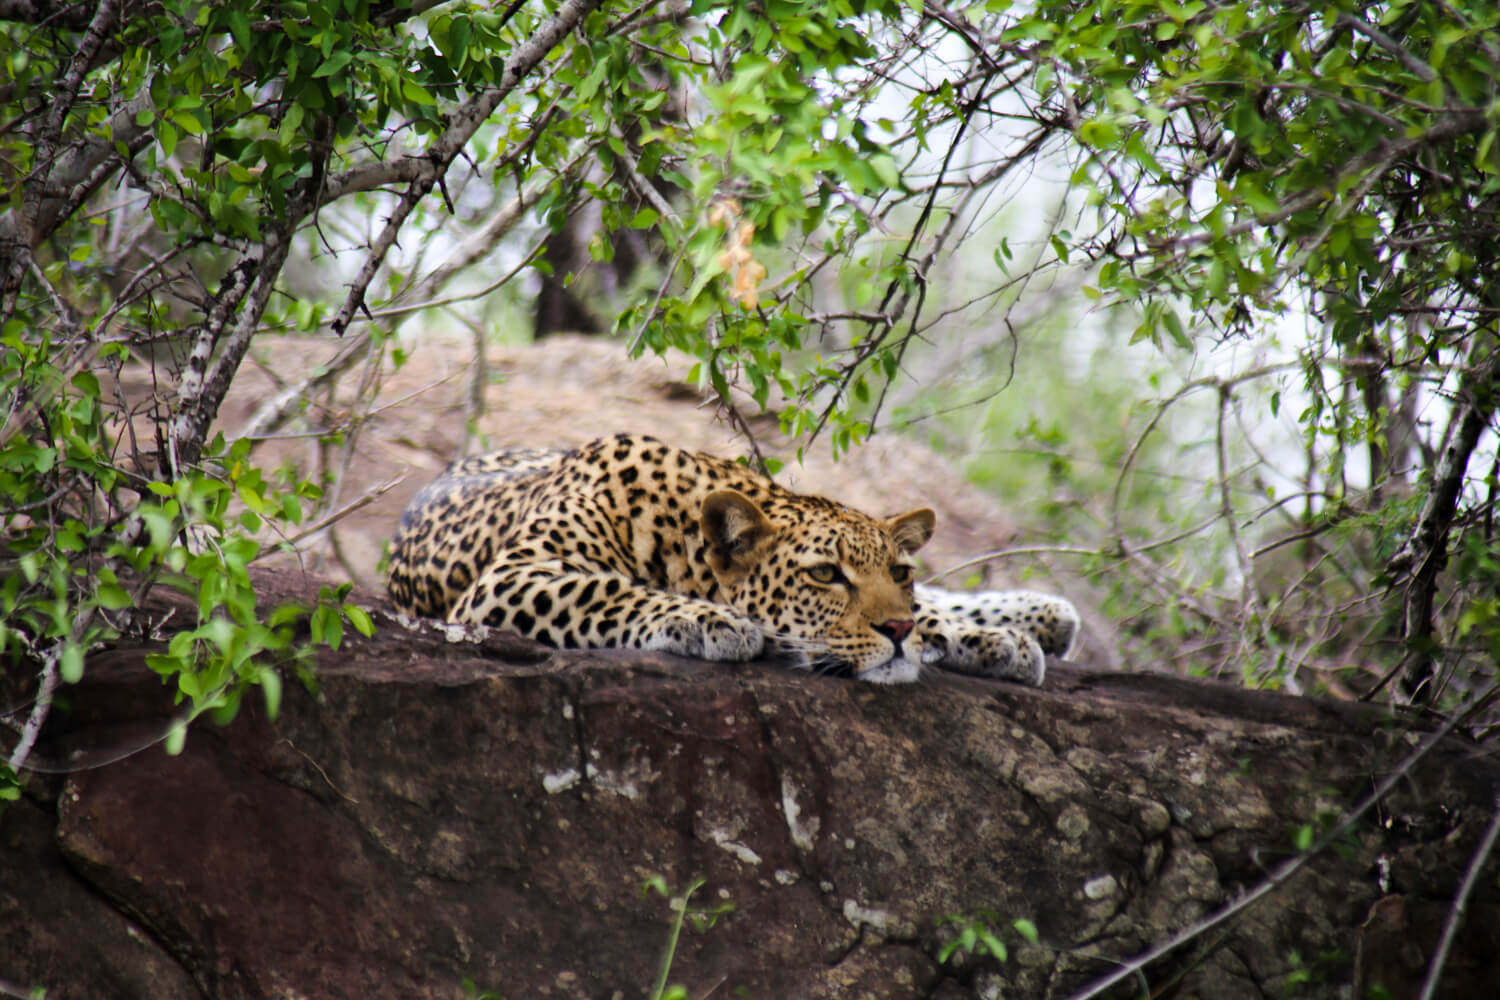 A leopard sleeping on a rock in the ultimate picture of Kruger National Park safari